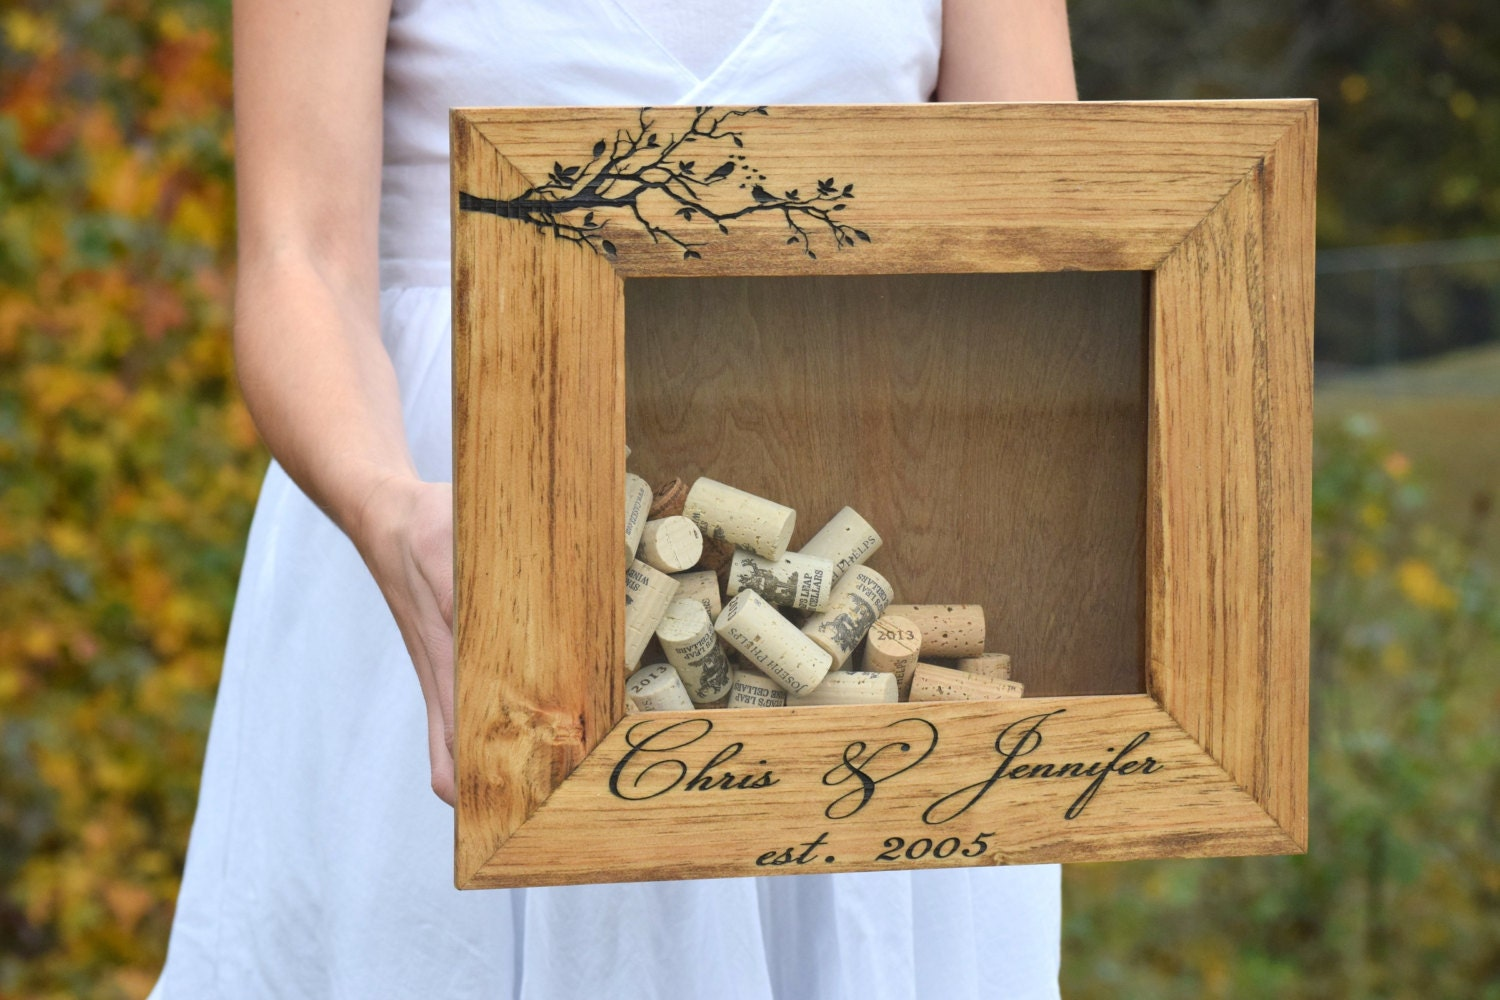 wine cork holder personalized wine cork shadow box wine cork shadow box wine cork display bottle cap holder wine cork keeper